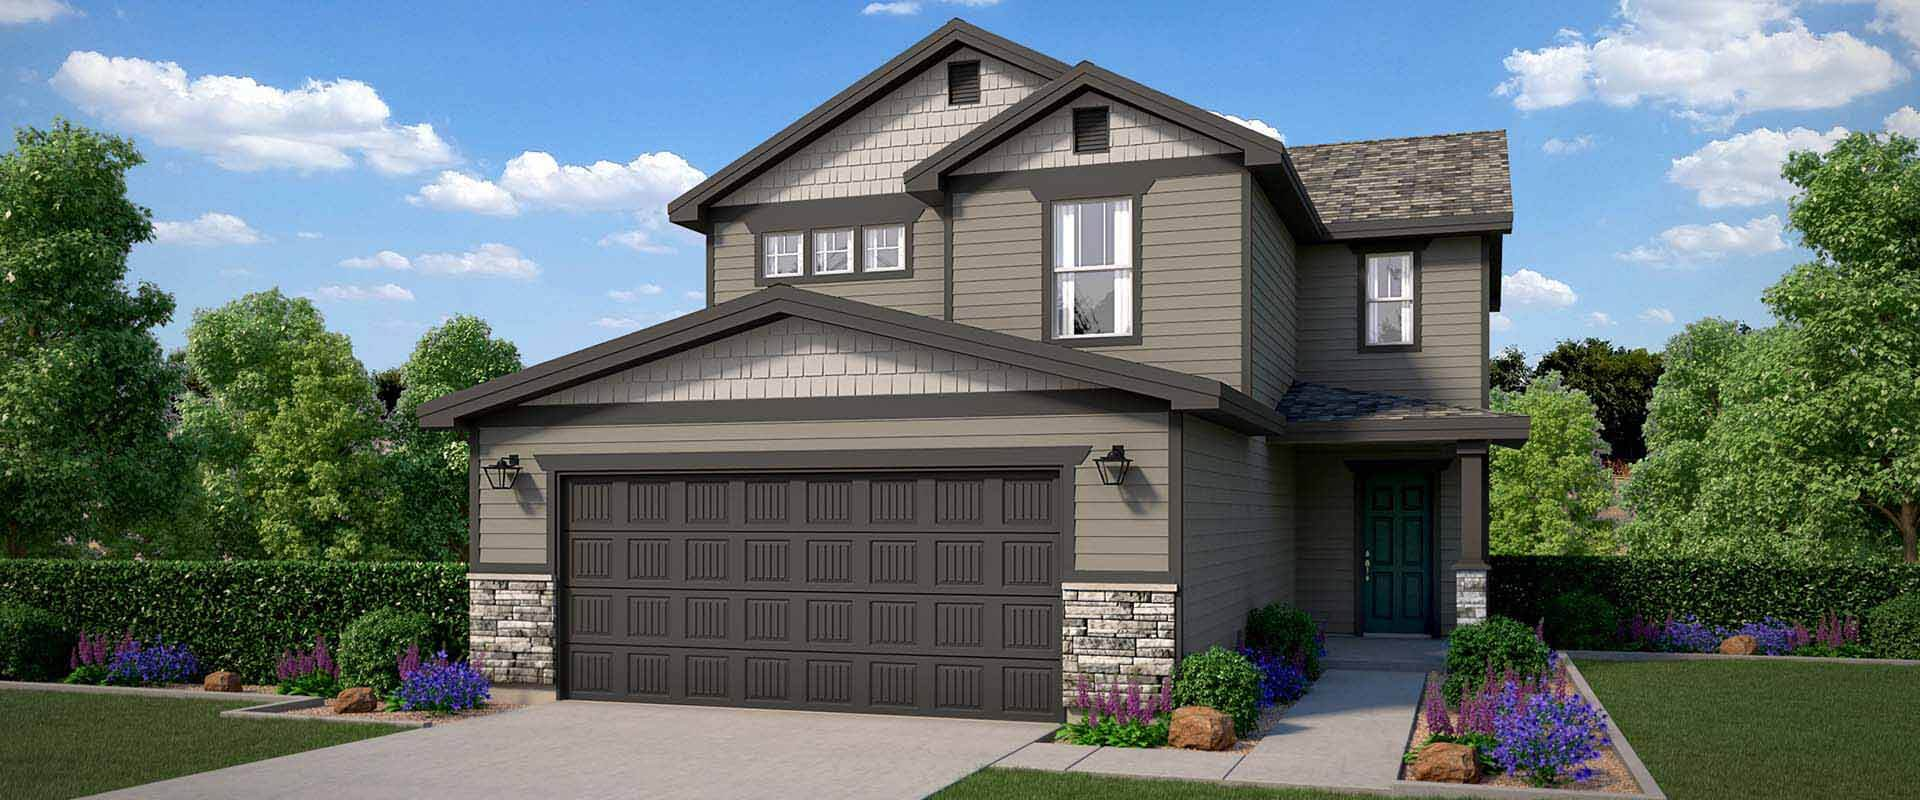 Payette-new-homes-boise-idaho-hubble-homes-craftsman.jpg